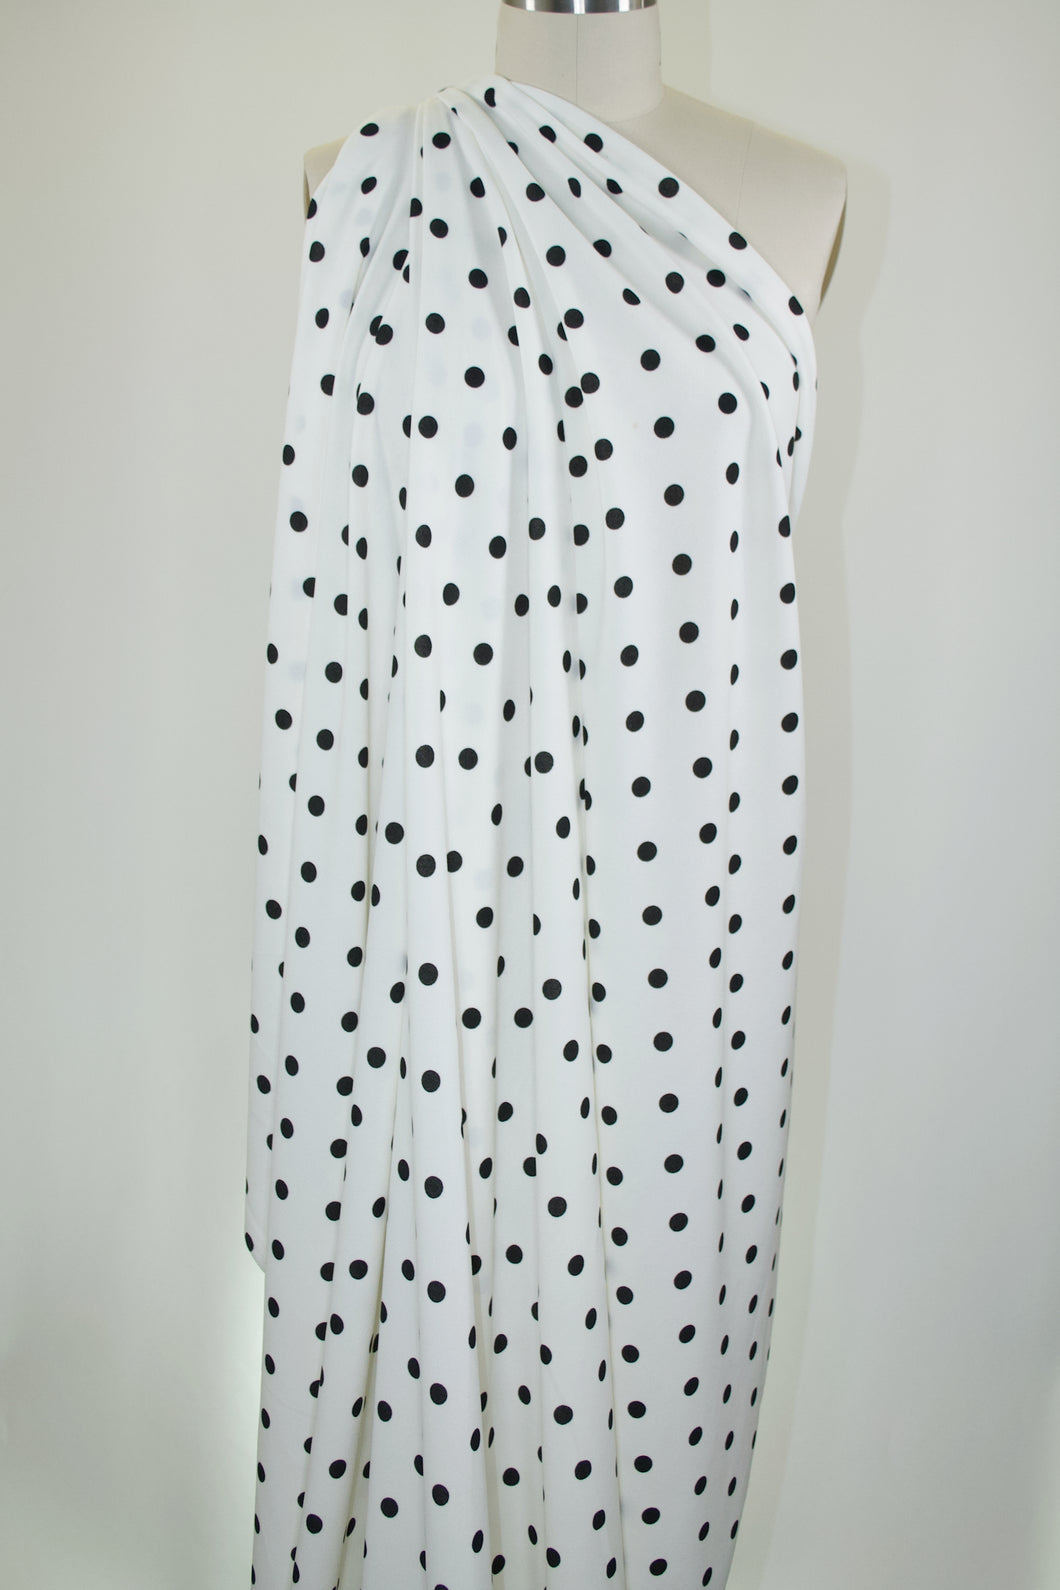 Dot's One Amazing Techno Crepe Knit - Black on Off-White